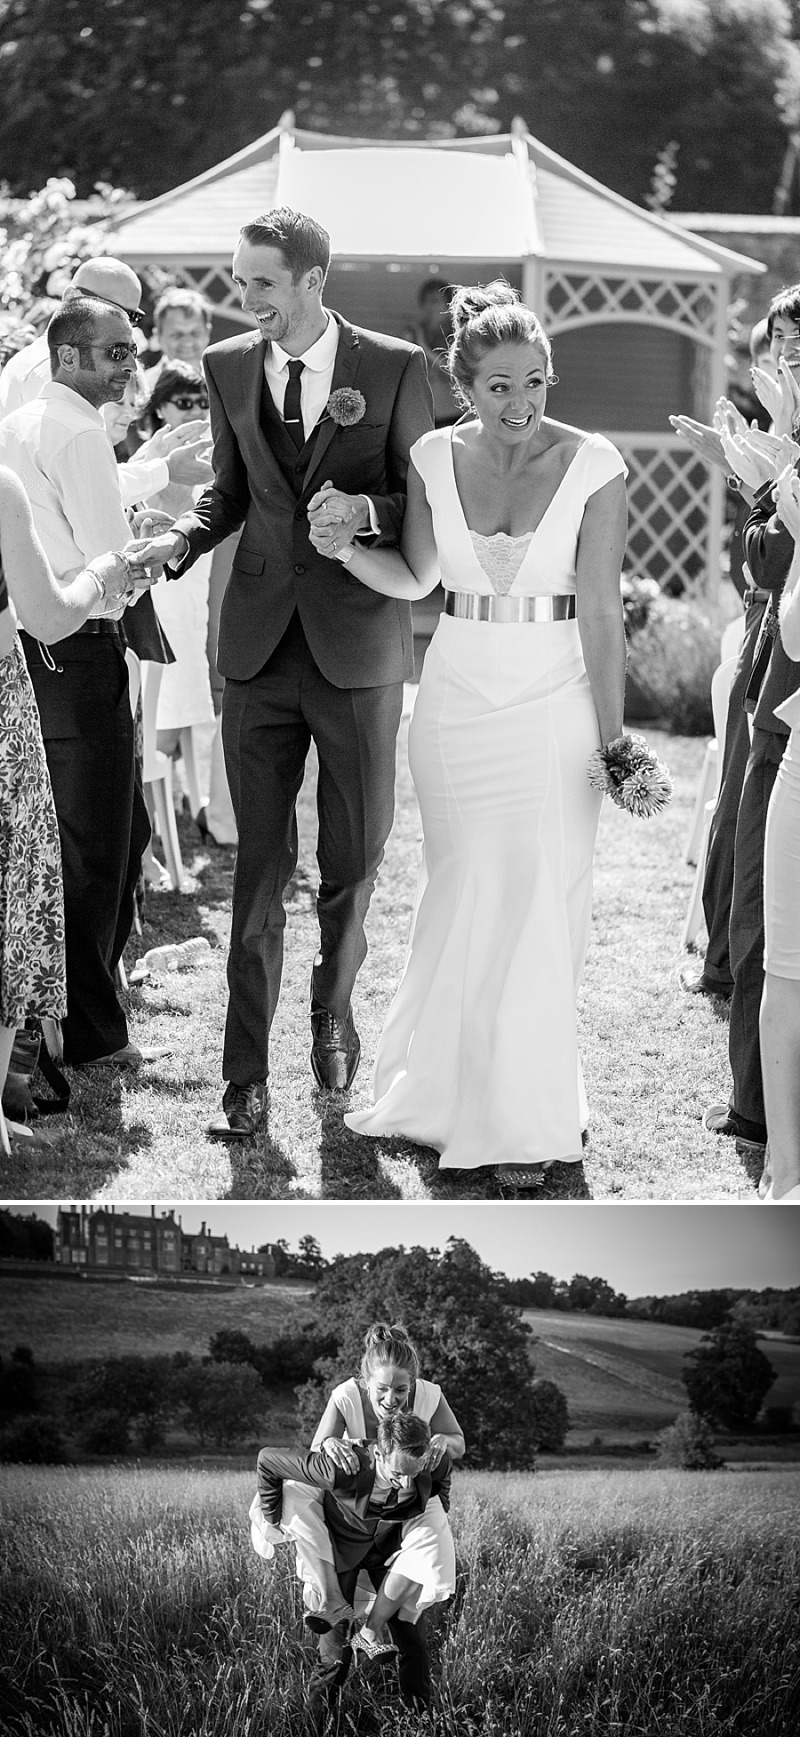 Marquee Wedding In East Sussex, Bride In Self-Designed Gown Made By Angela Webber, With Gold Matthew Williamson Belt, Bright Coloured 50s Style Bridesmaids Dresses, Images by Andrew Marshall_0008